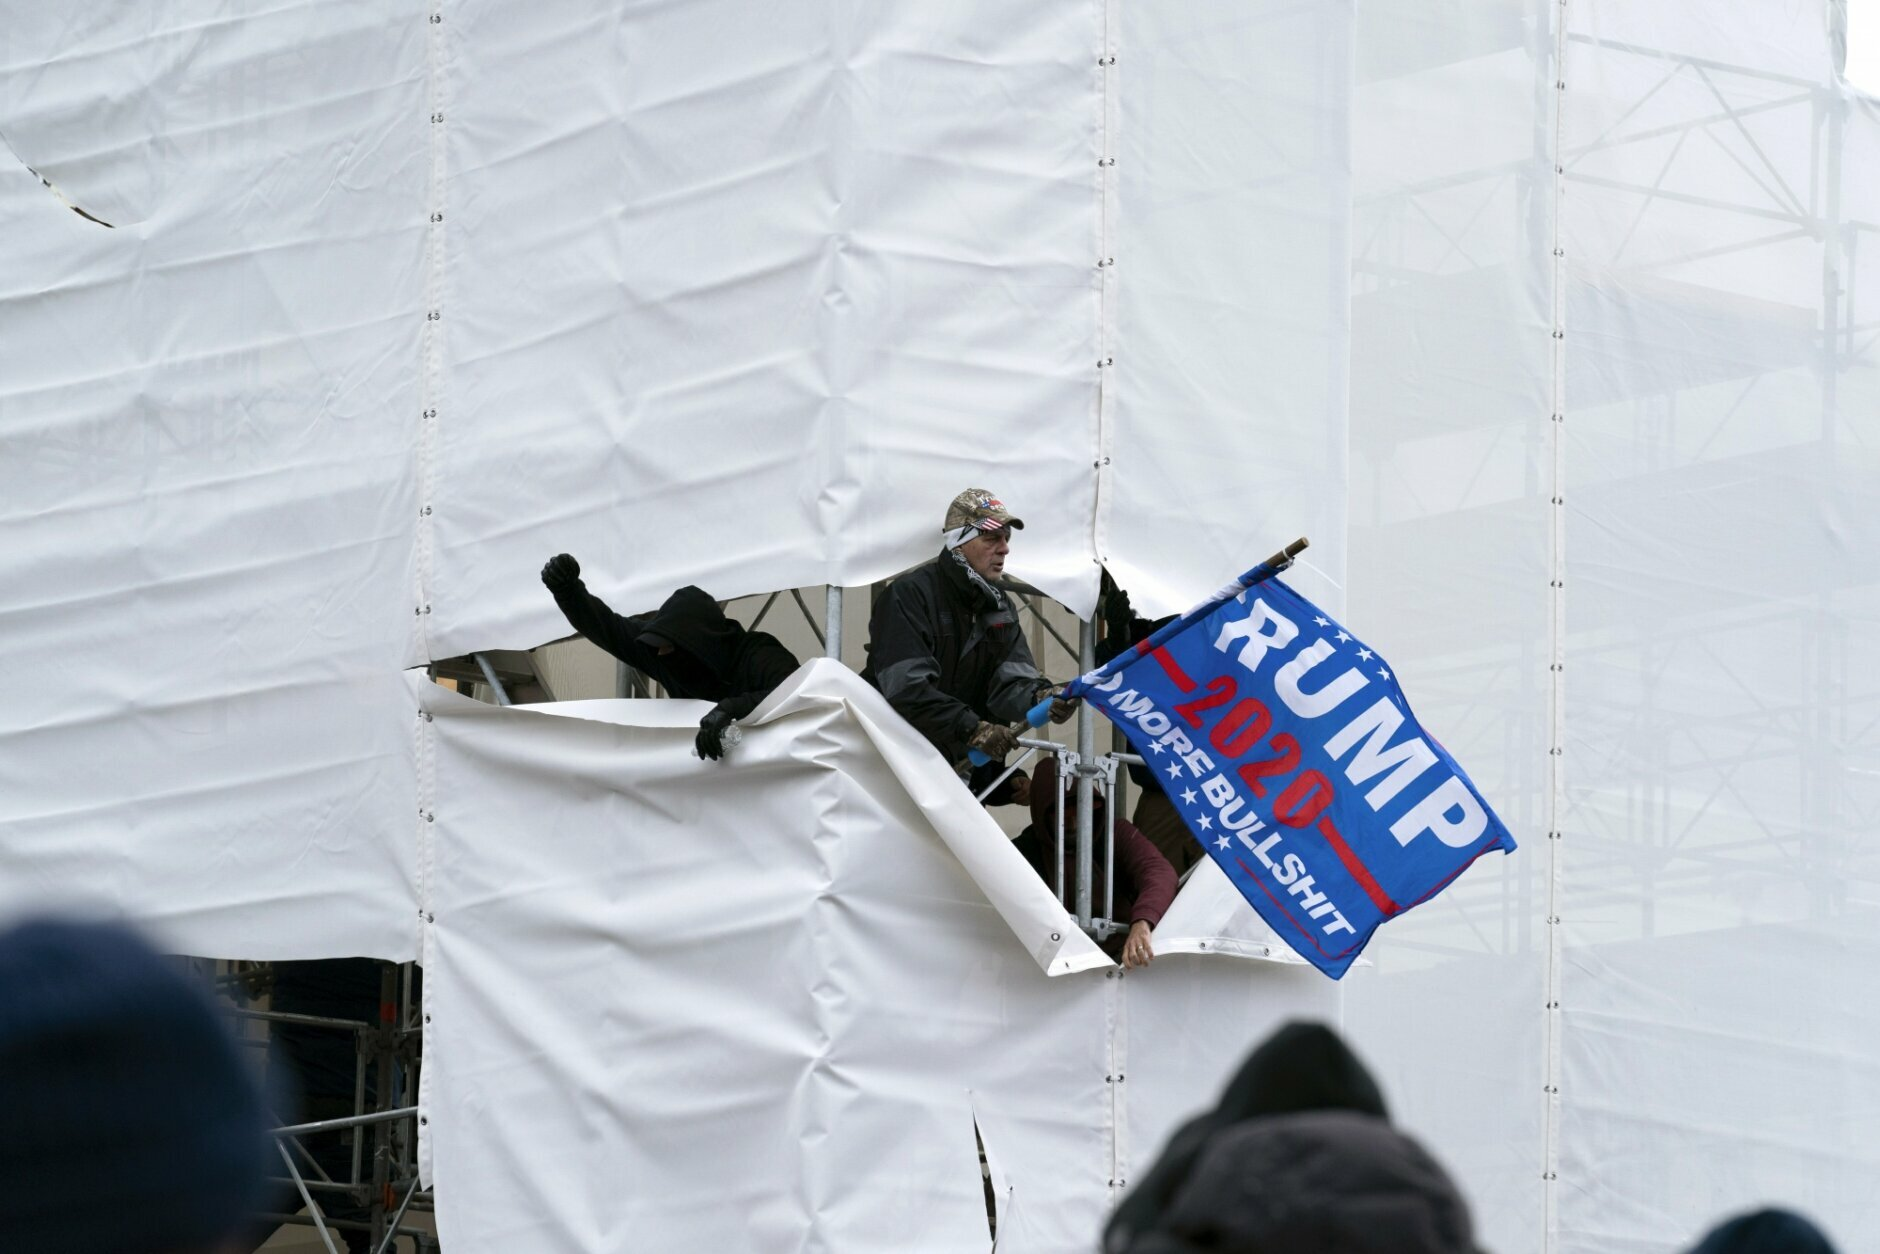 Trump supporters gather outside the Capitol, Wednesday, Jan. 6, 2021, in Washington. As Congress prepares to affirm President-elect Joe Biden's victory, thousands of people have gathered to show their support for President Donald Trump and his claims of election fraud. (AP Photo/Jose Luis Magana)